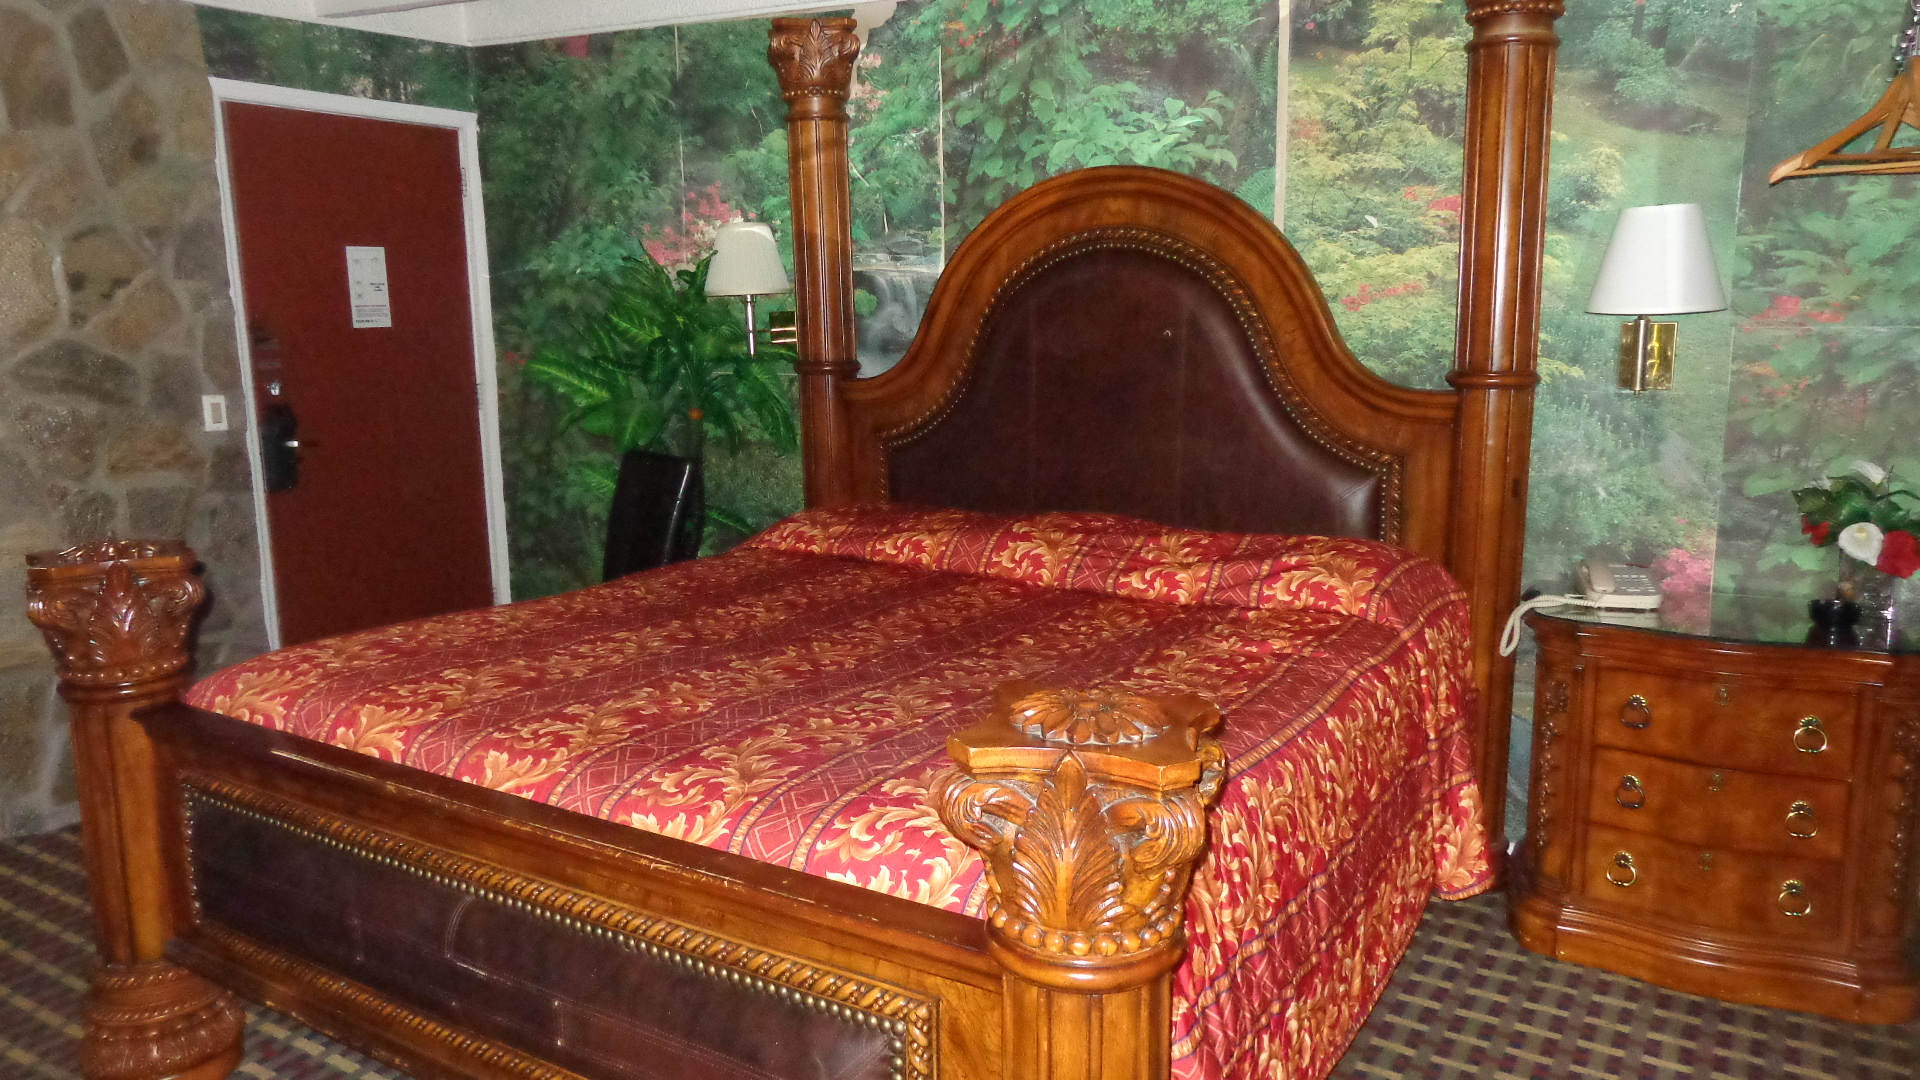 King Bed Room at Edgewood Motel in NY